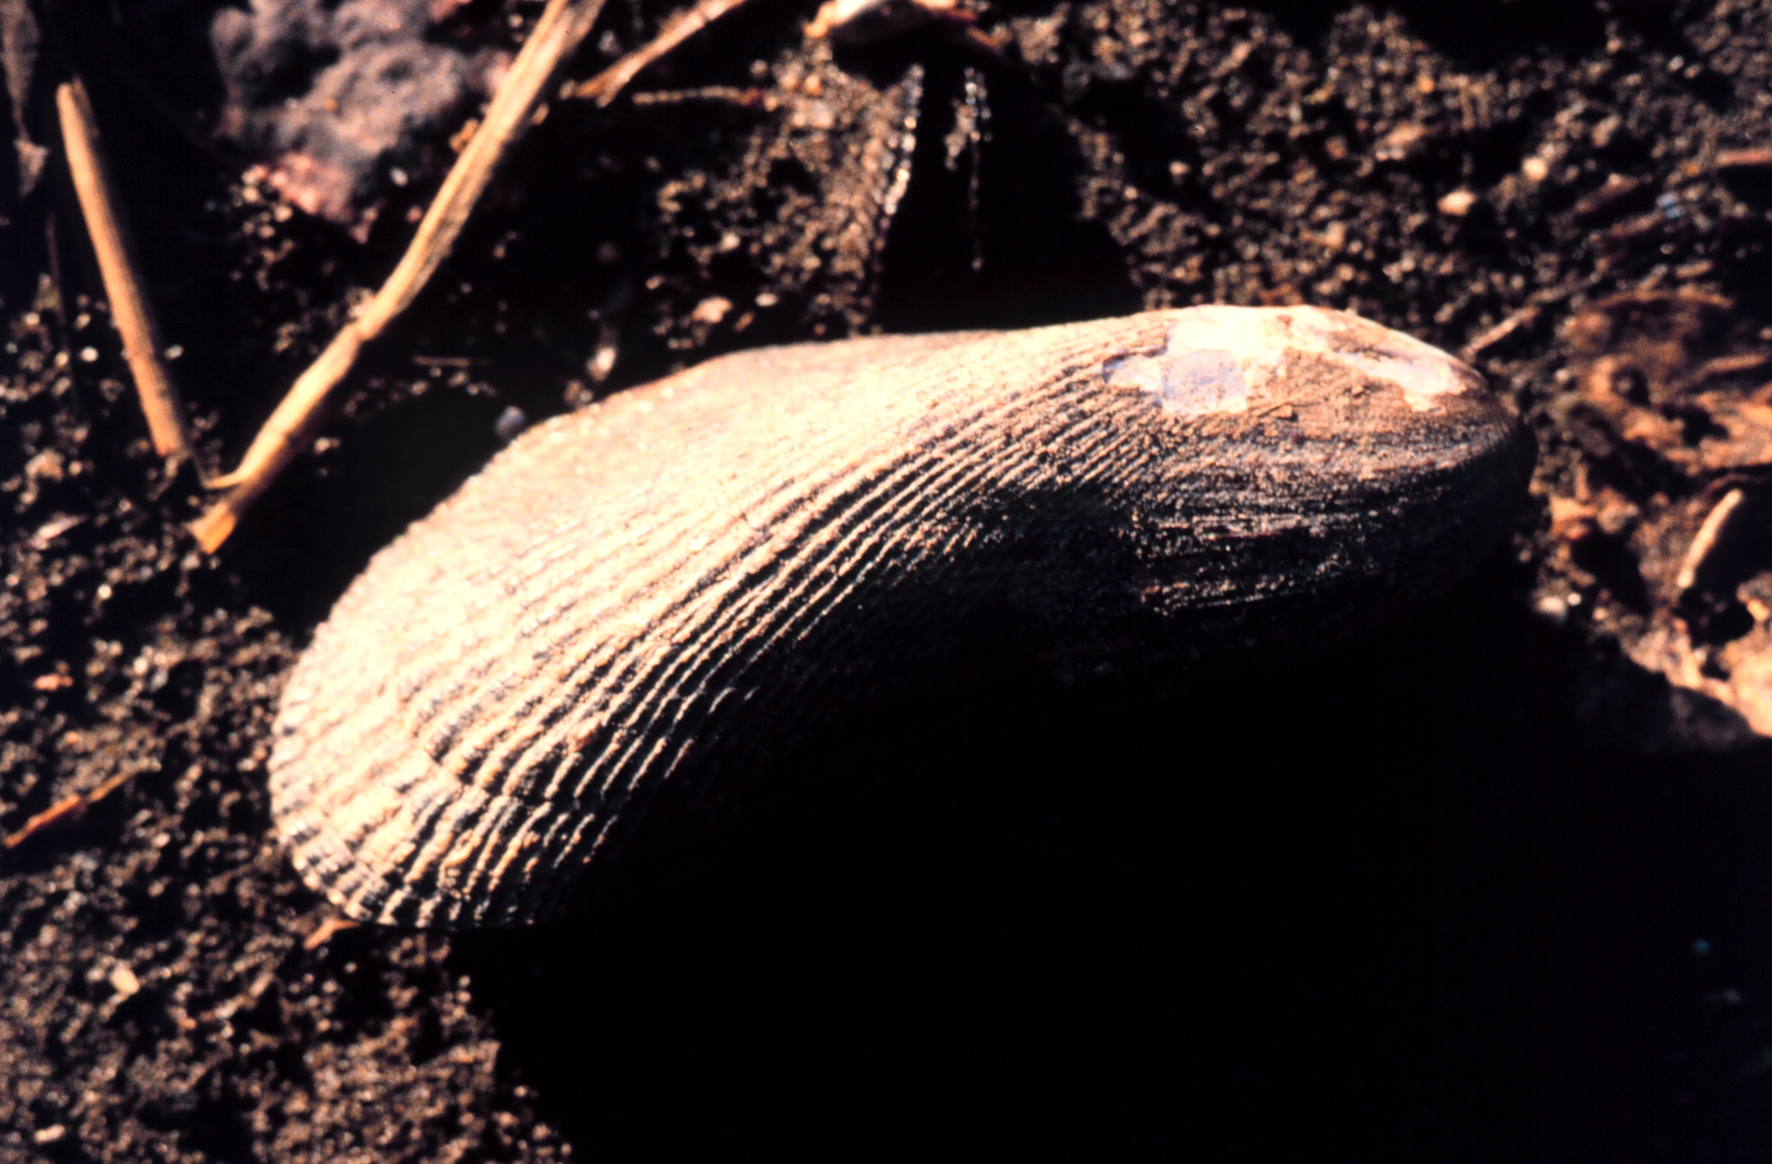 Link to ribbed mussel photo on Wikimedia Commons